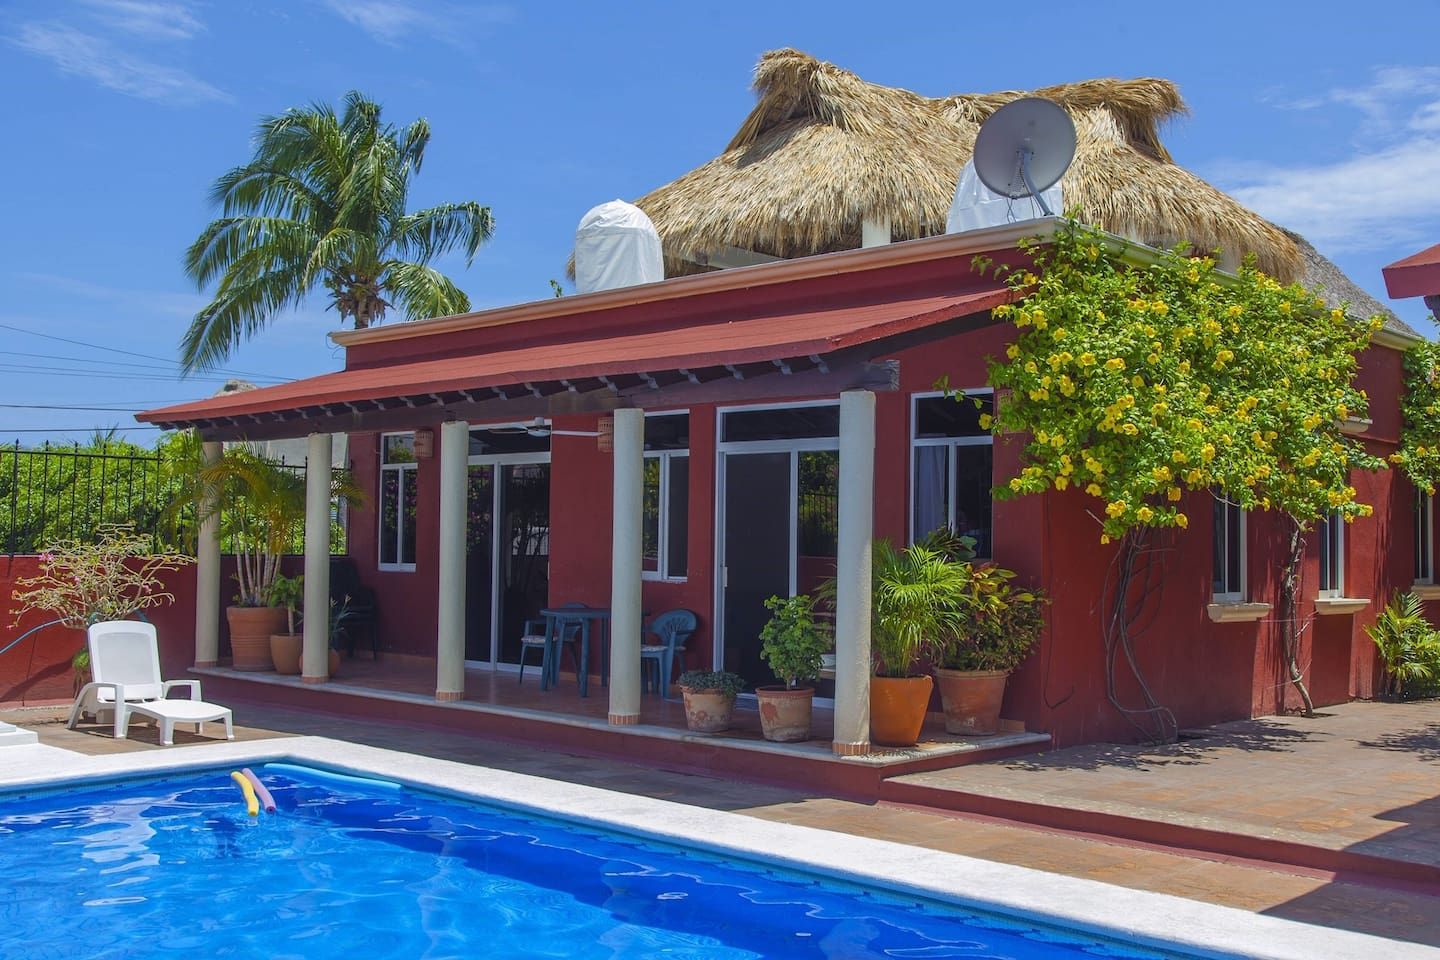 Patio and pool. The pool is shared with only 5 other casitas. The casita has no shared walls.